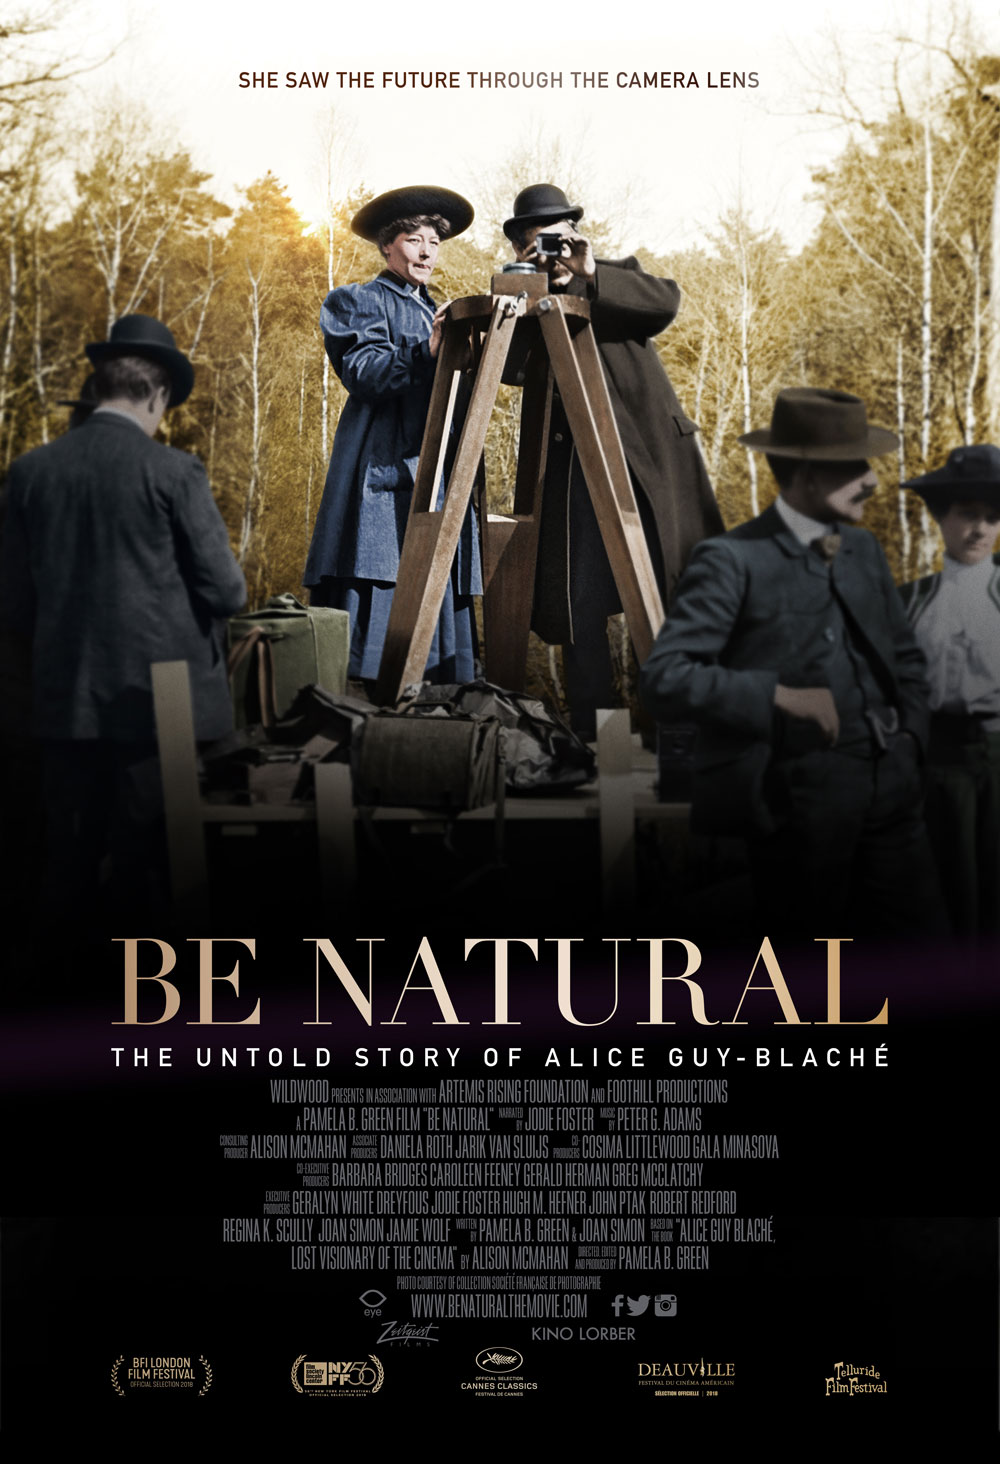 Be Natural: The Untold Story of Alice Guy-Blaché [DVD]